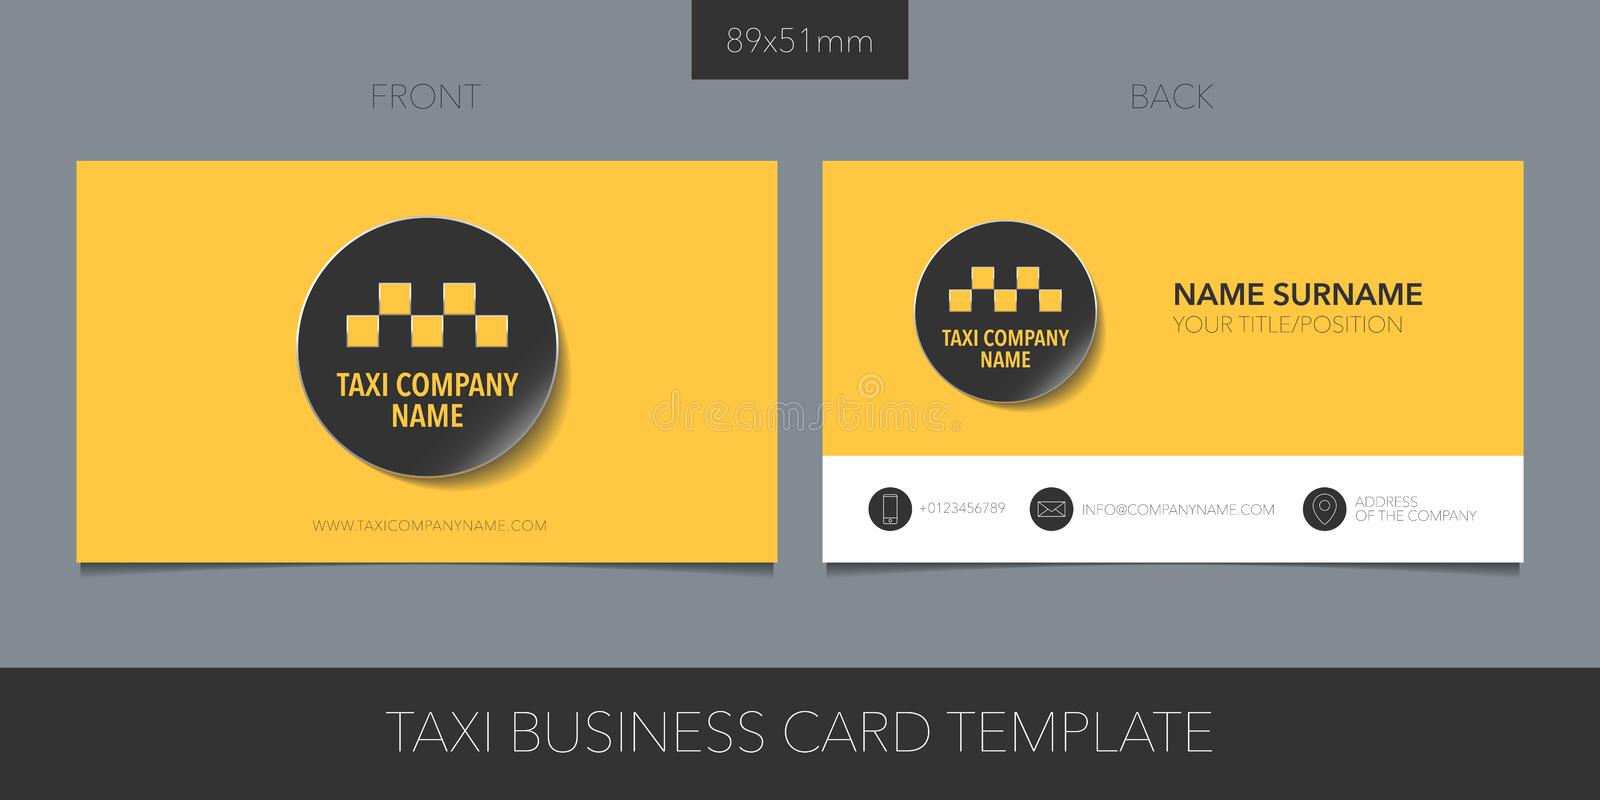 PrintTaxi, cab vector business card with logo, icon and template contacts details, name stock illustration